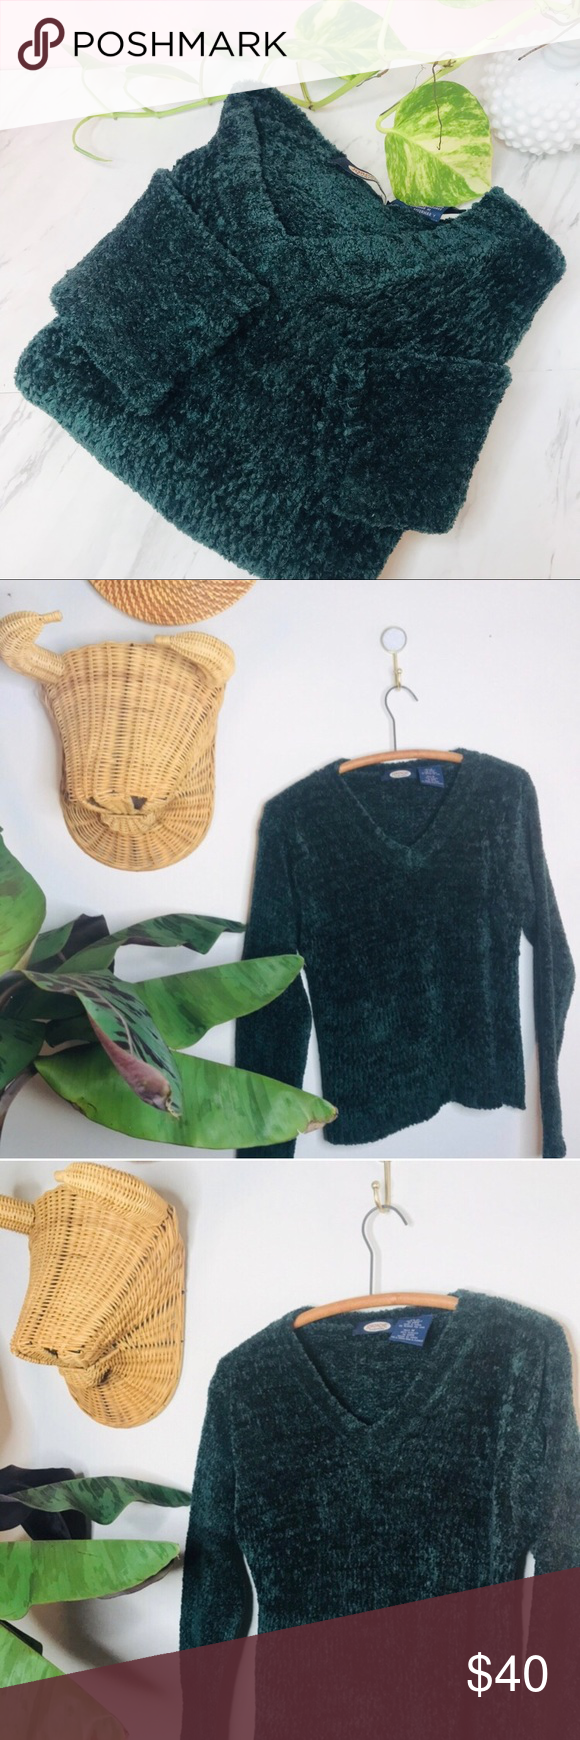 vtg vsco 90s Velour Crop Emerald Sweater Vintage Retro 90's Velour Crop Emerald Sweater  • Tags say medium but would fit a small or XS as an overs...